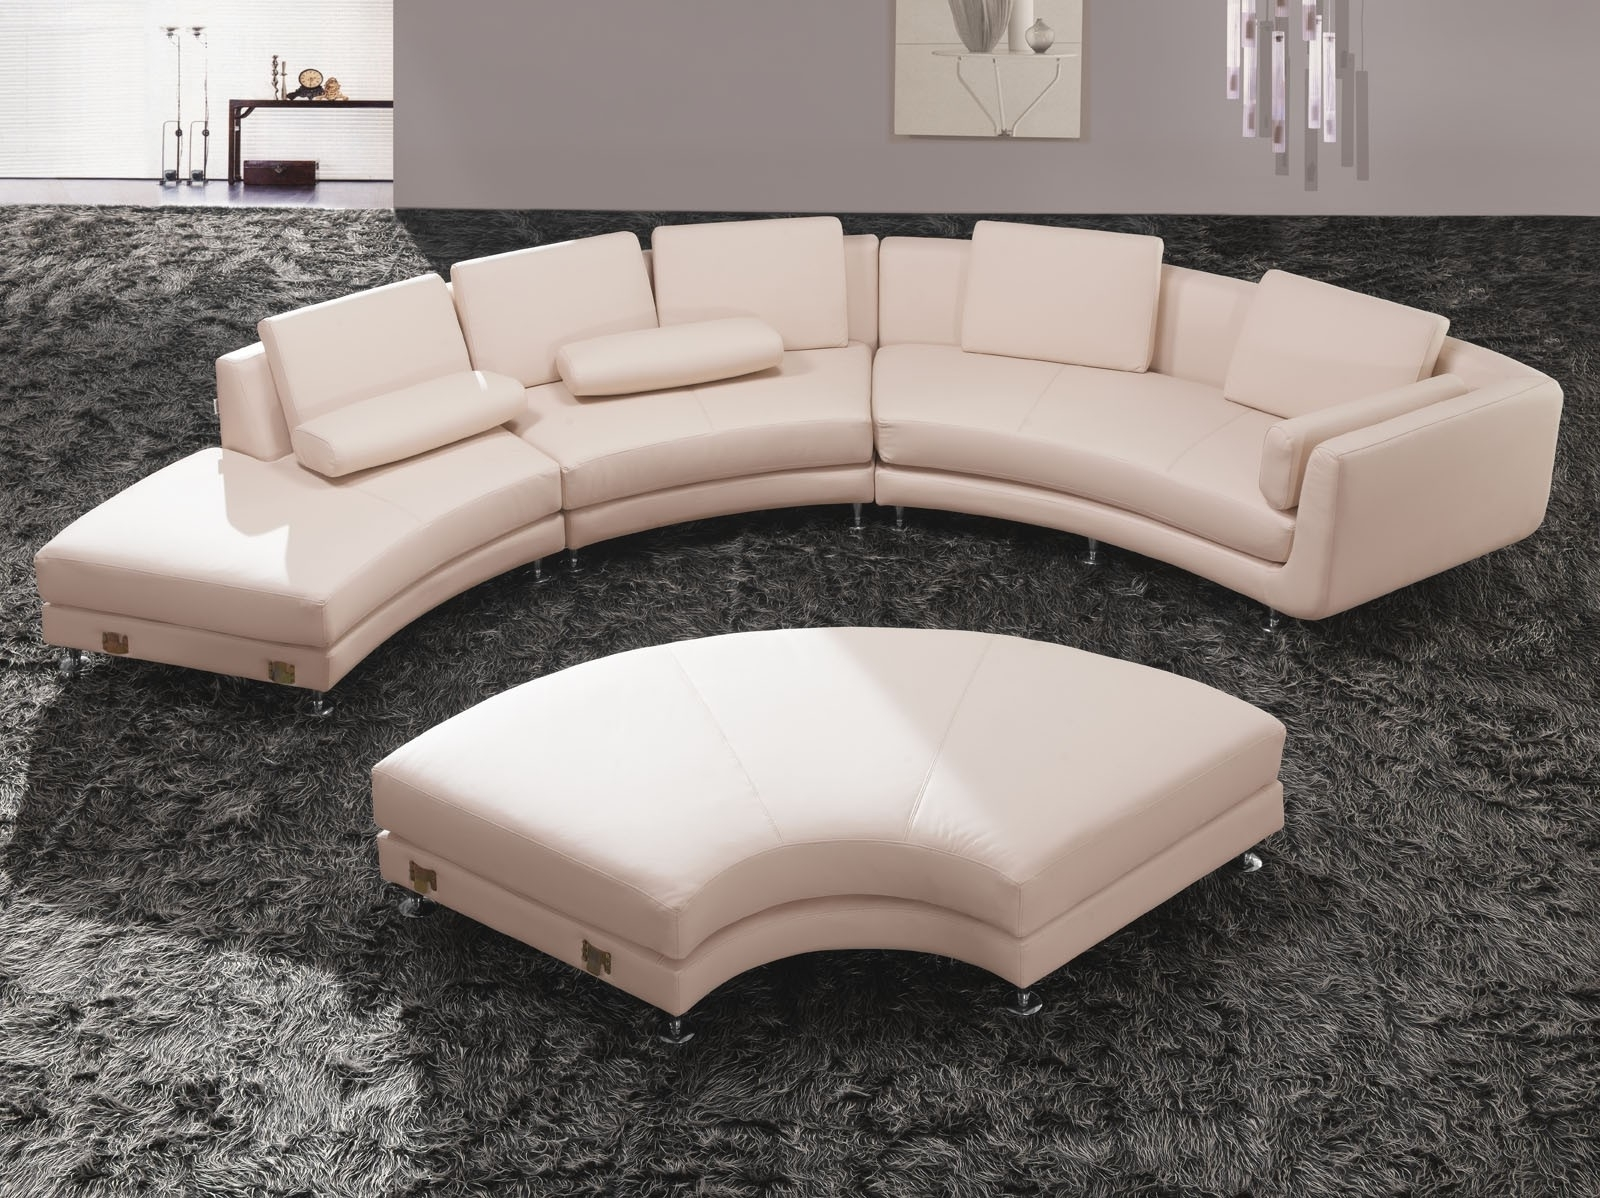 Circular Sectional Sofas Throughout Current Sofa : Glamorous Round Sectional Sofa Bed Curved Leather Tufted (View 8 of 20)